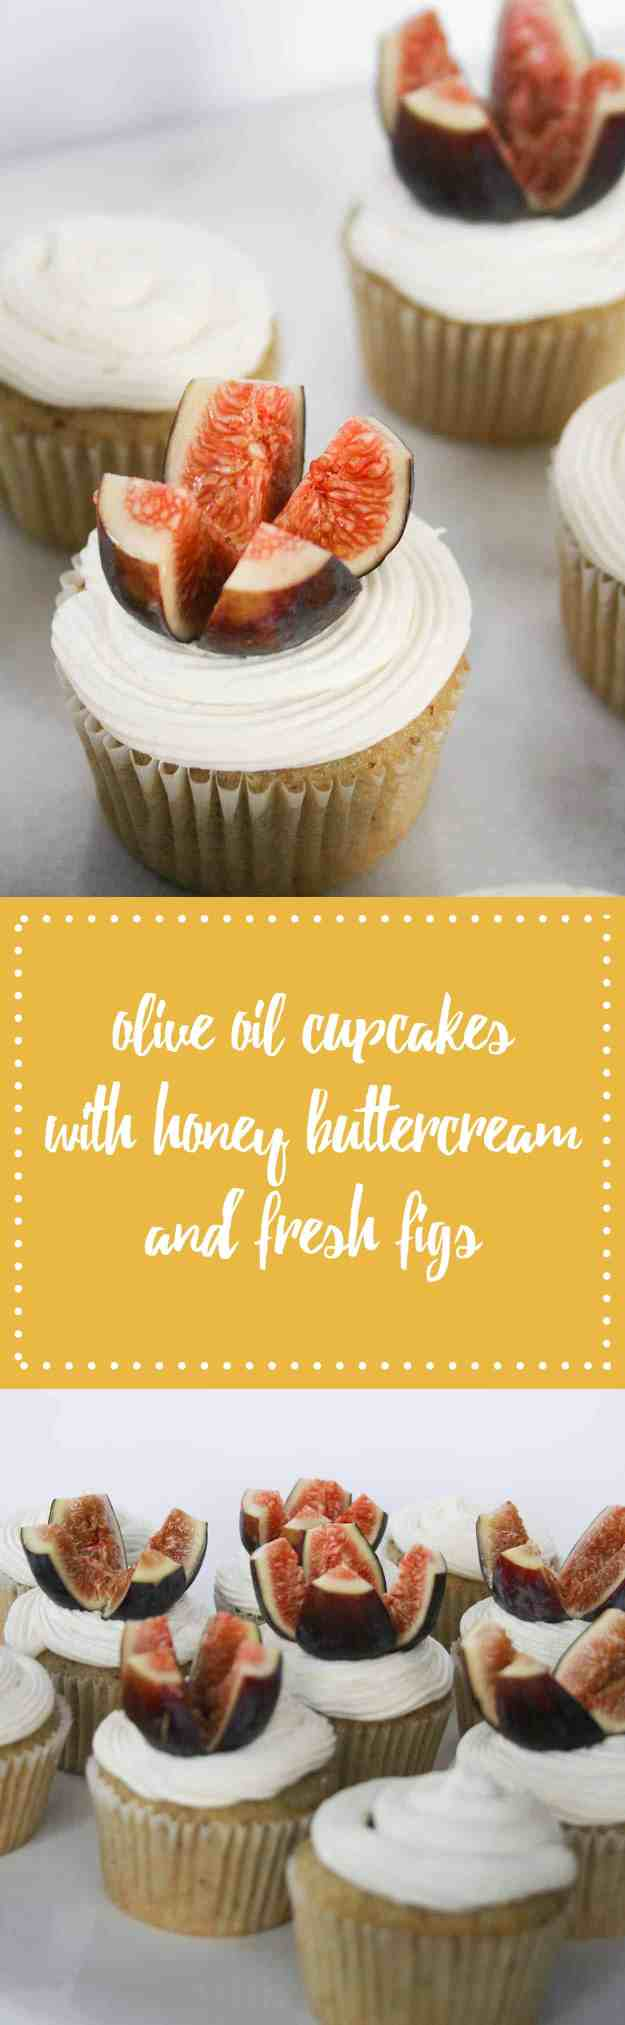 The perfect end of summer treat - Olive Oil Cupcakes with Honey Buttercream and Fresh Figs! | hungrybynature.com